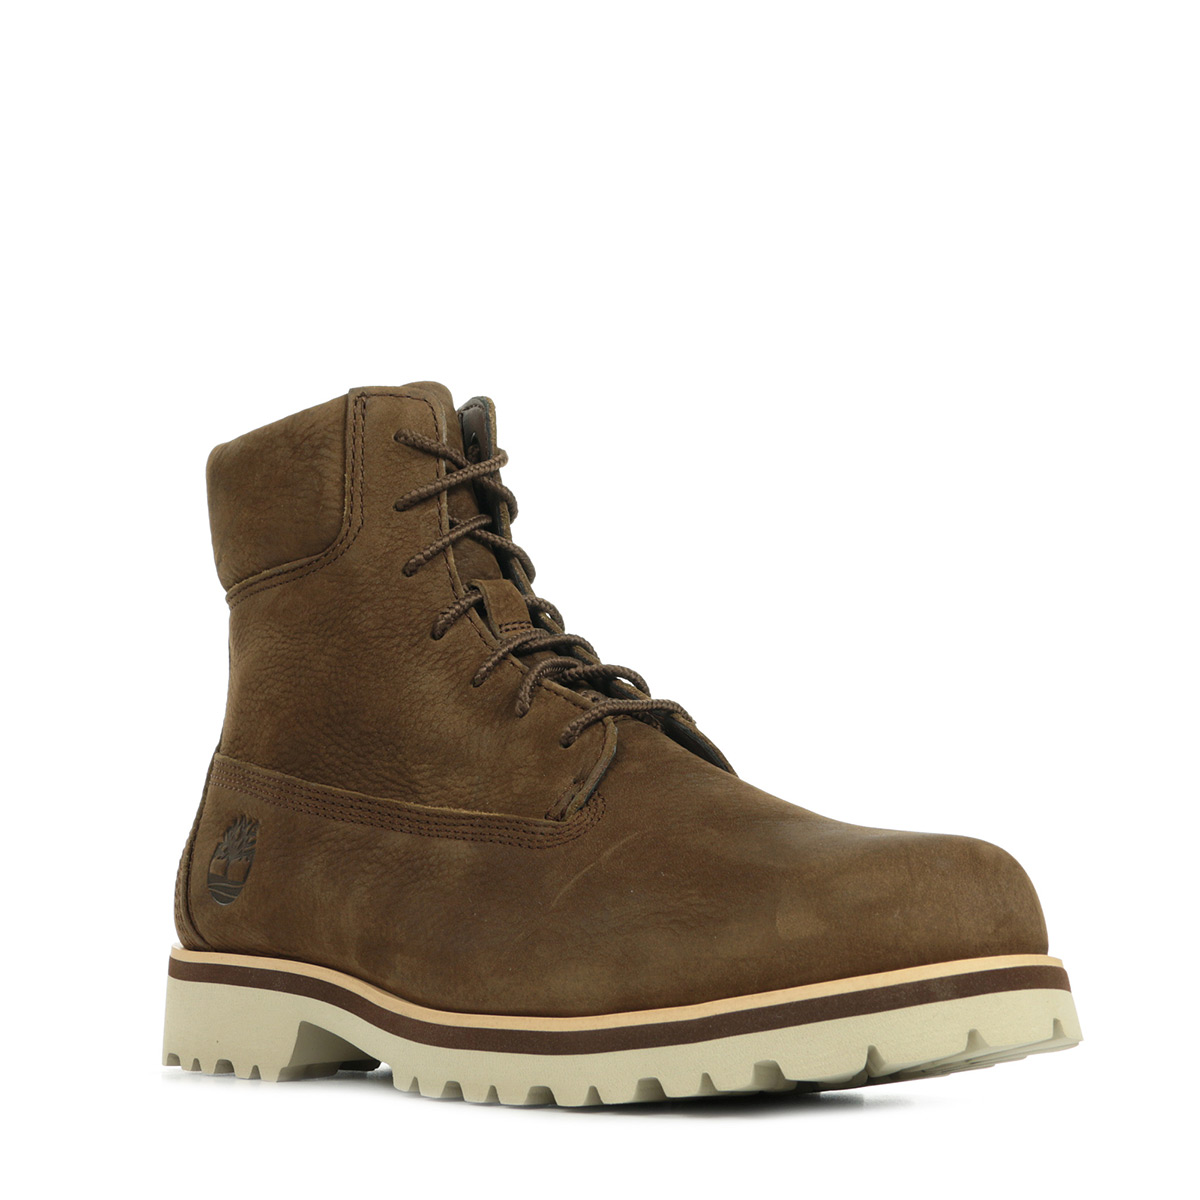 Timberland Chilmark 6 Boot Dark Earth CA1PA2, Boots homme